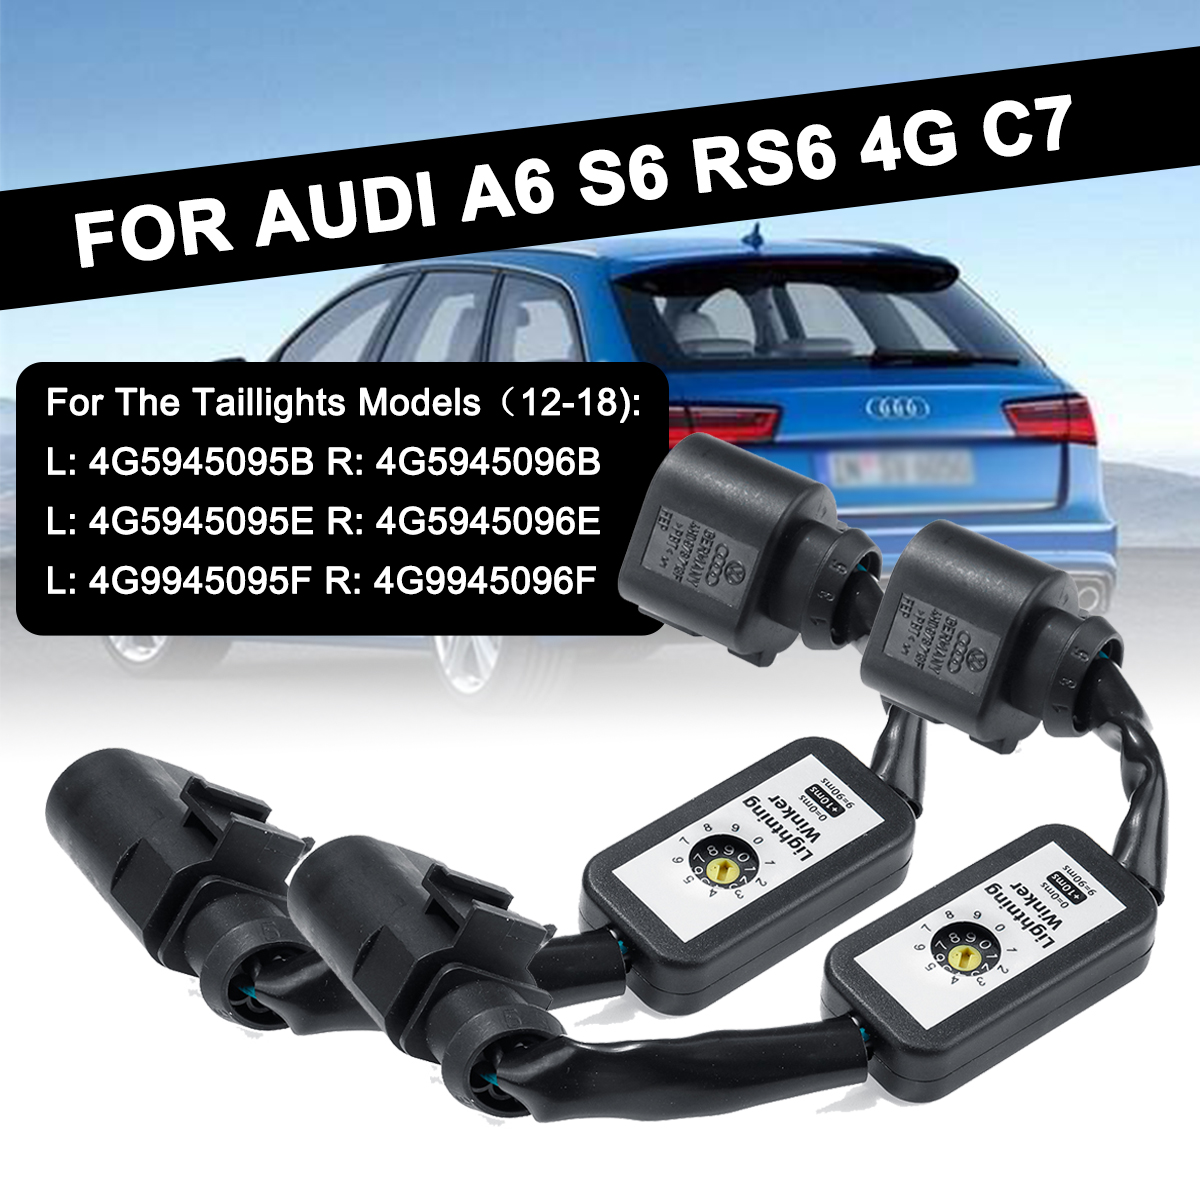 For <font><b>AUDI</b></font> <font><b>A6</b></font> S6 RS6 4G C7 2X Dynamic Turn Signal Indicator LED Taillight Add-on Module Cable Wire Harness Left&Right Tail Light image